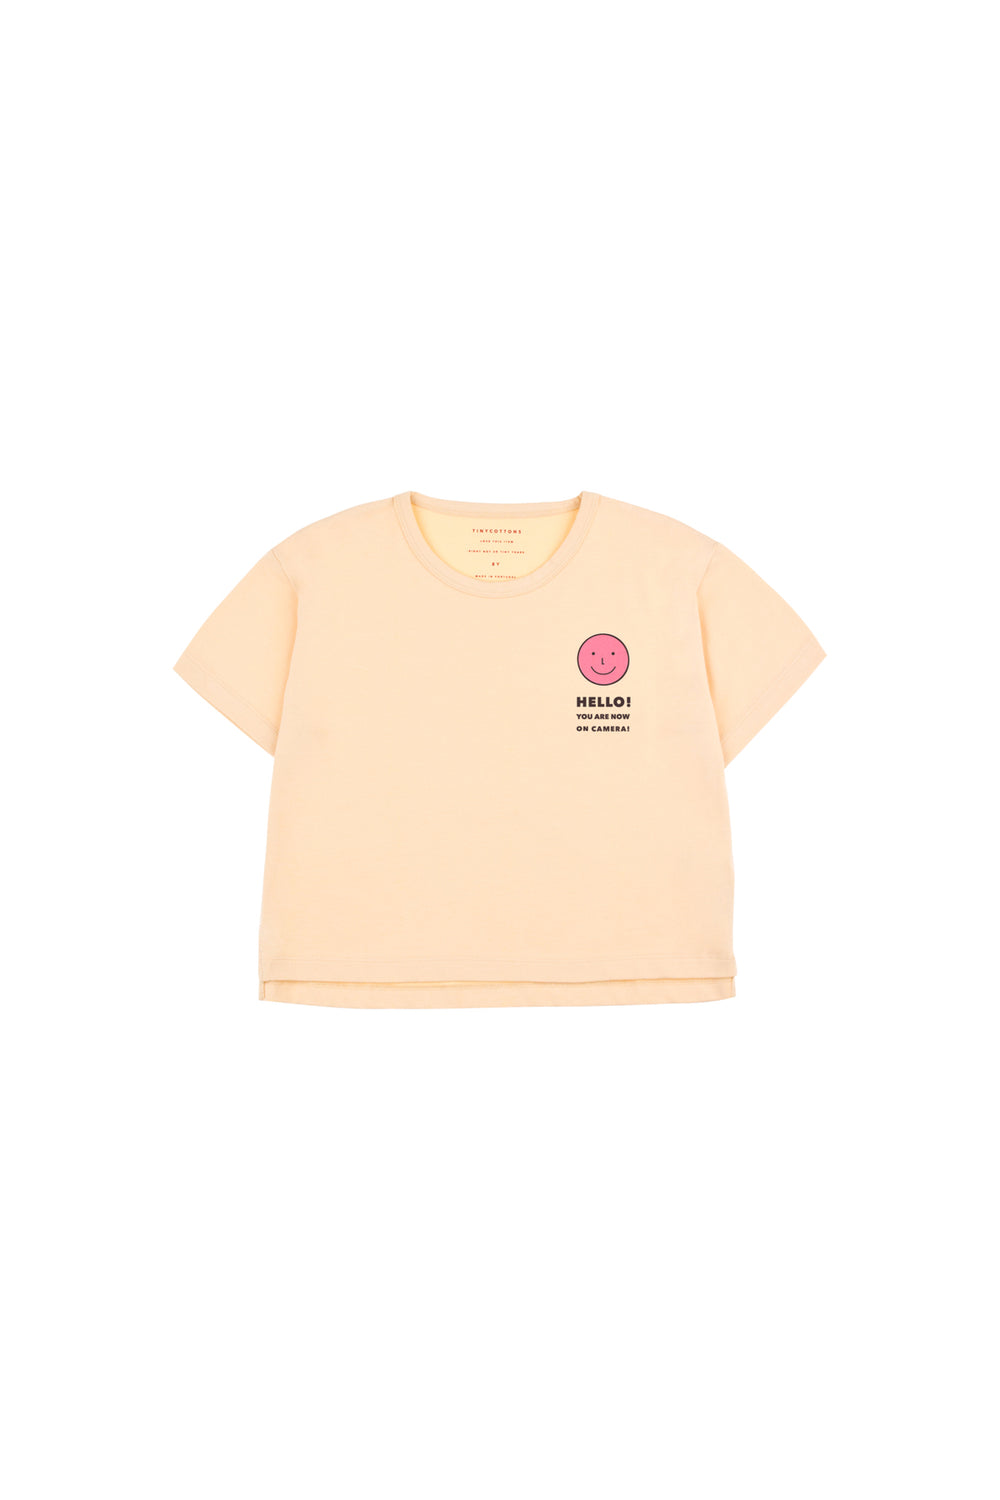 Tiny Cottons HELLO Short Sleeve CROP TEE cream / rose